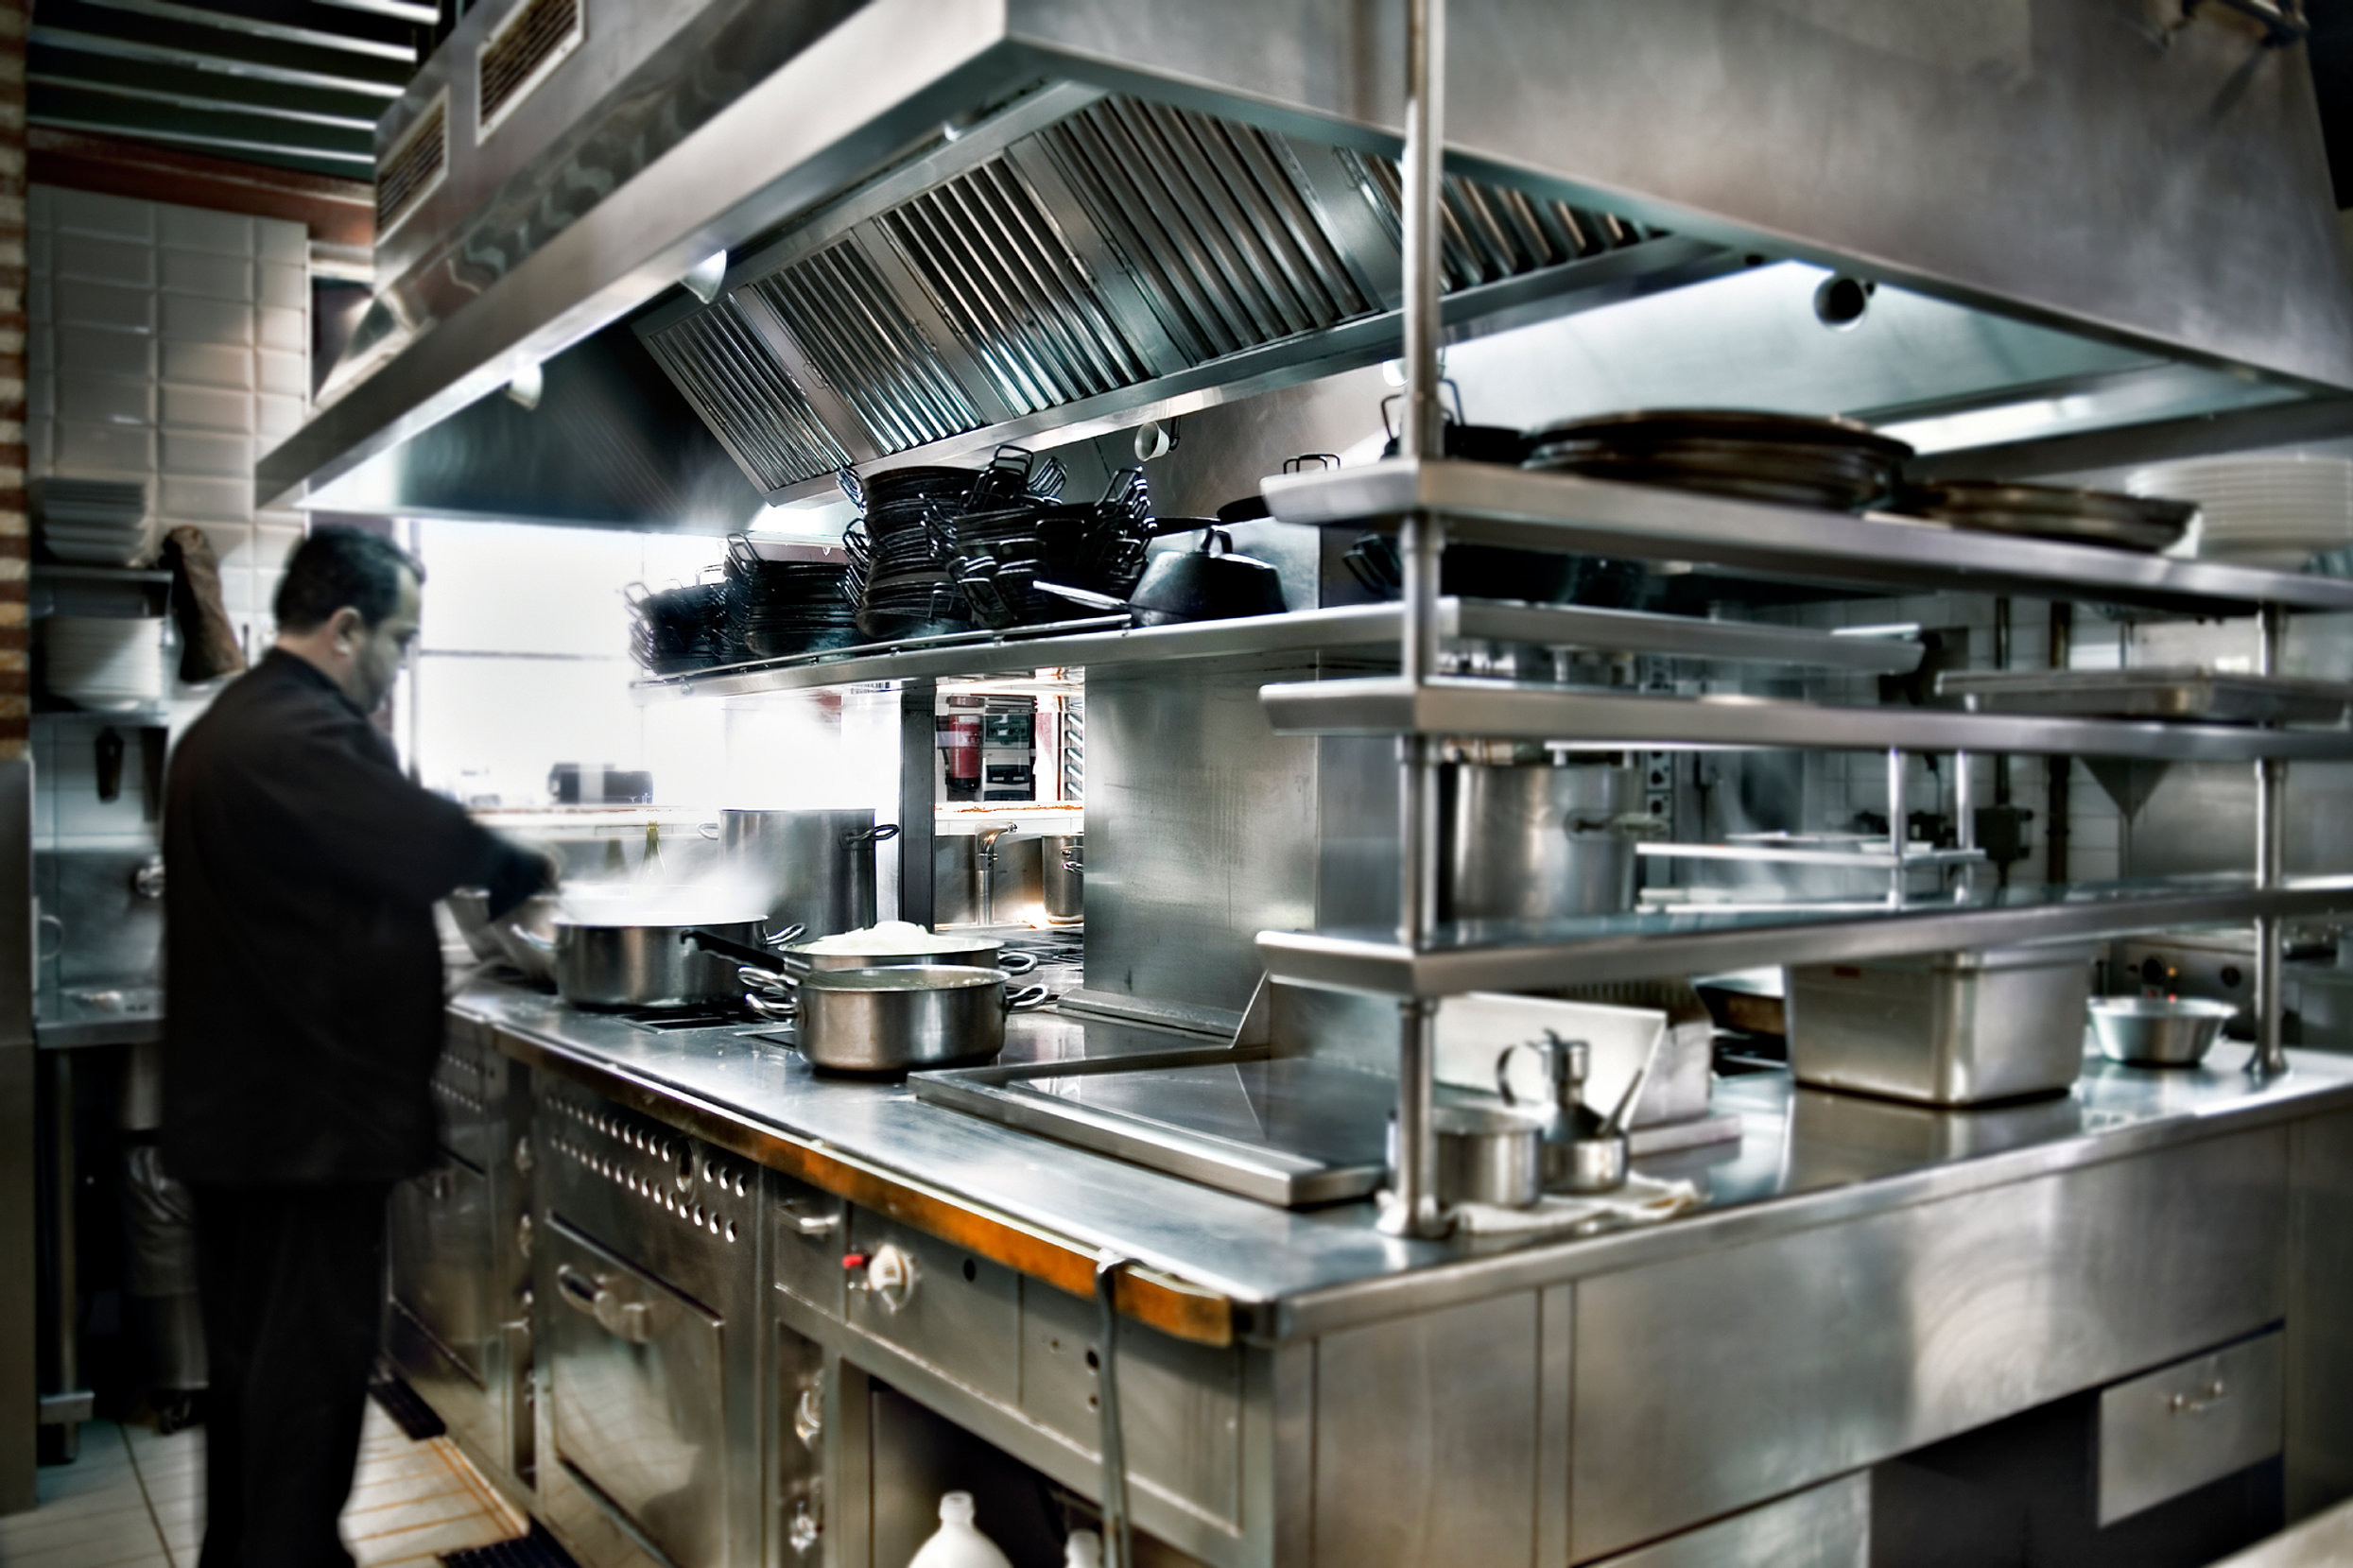 Restaurant Kitchen Hood Cleaning cool restaurant hood cleaning industrial kitchen hoods decor to